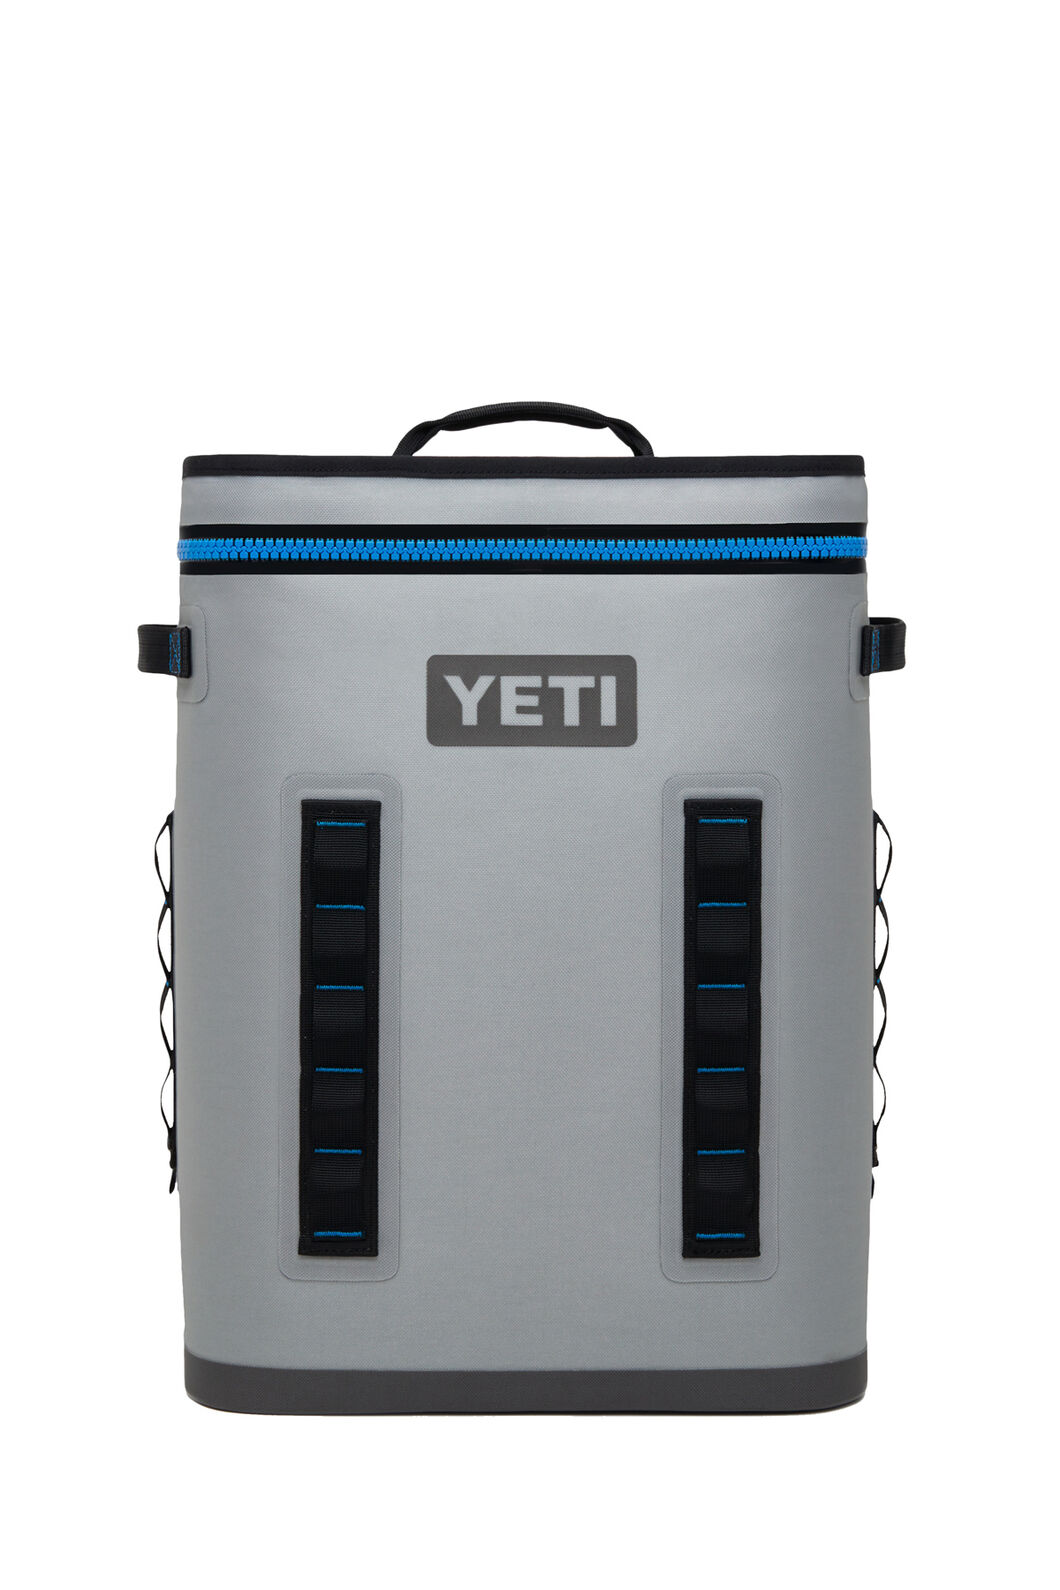 YETI® Hopper Backflip 24 Soft Cooler Backpack, None, hi-res